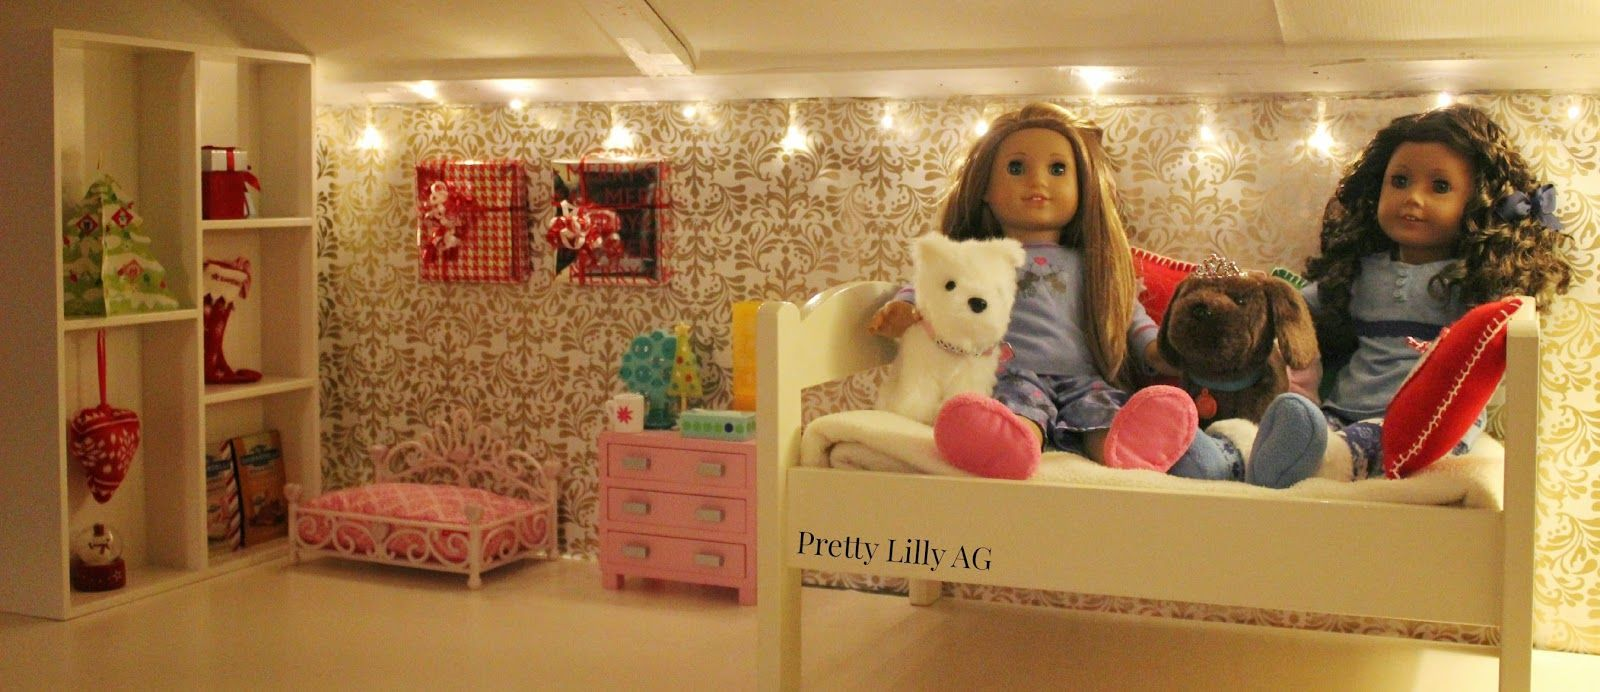 Pretty Lilly an American : Christmas Doll Bedroom Decorations ... on american doll bathroom, american doll classroom, american doll living room, american doll sewing projects, american doll furniture sale, american doll kitchen, american doll beds, american doll couches, american doll clothes storage, american doll house dimensions, american doll house tour,